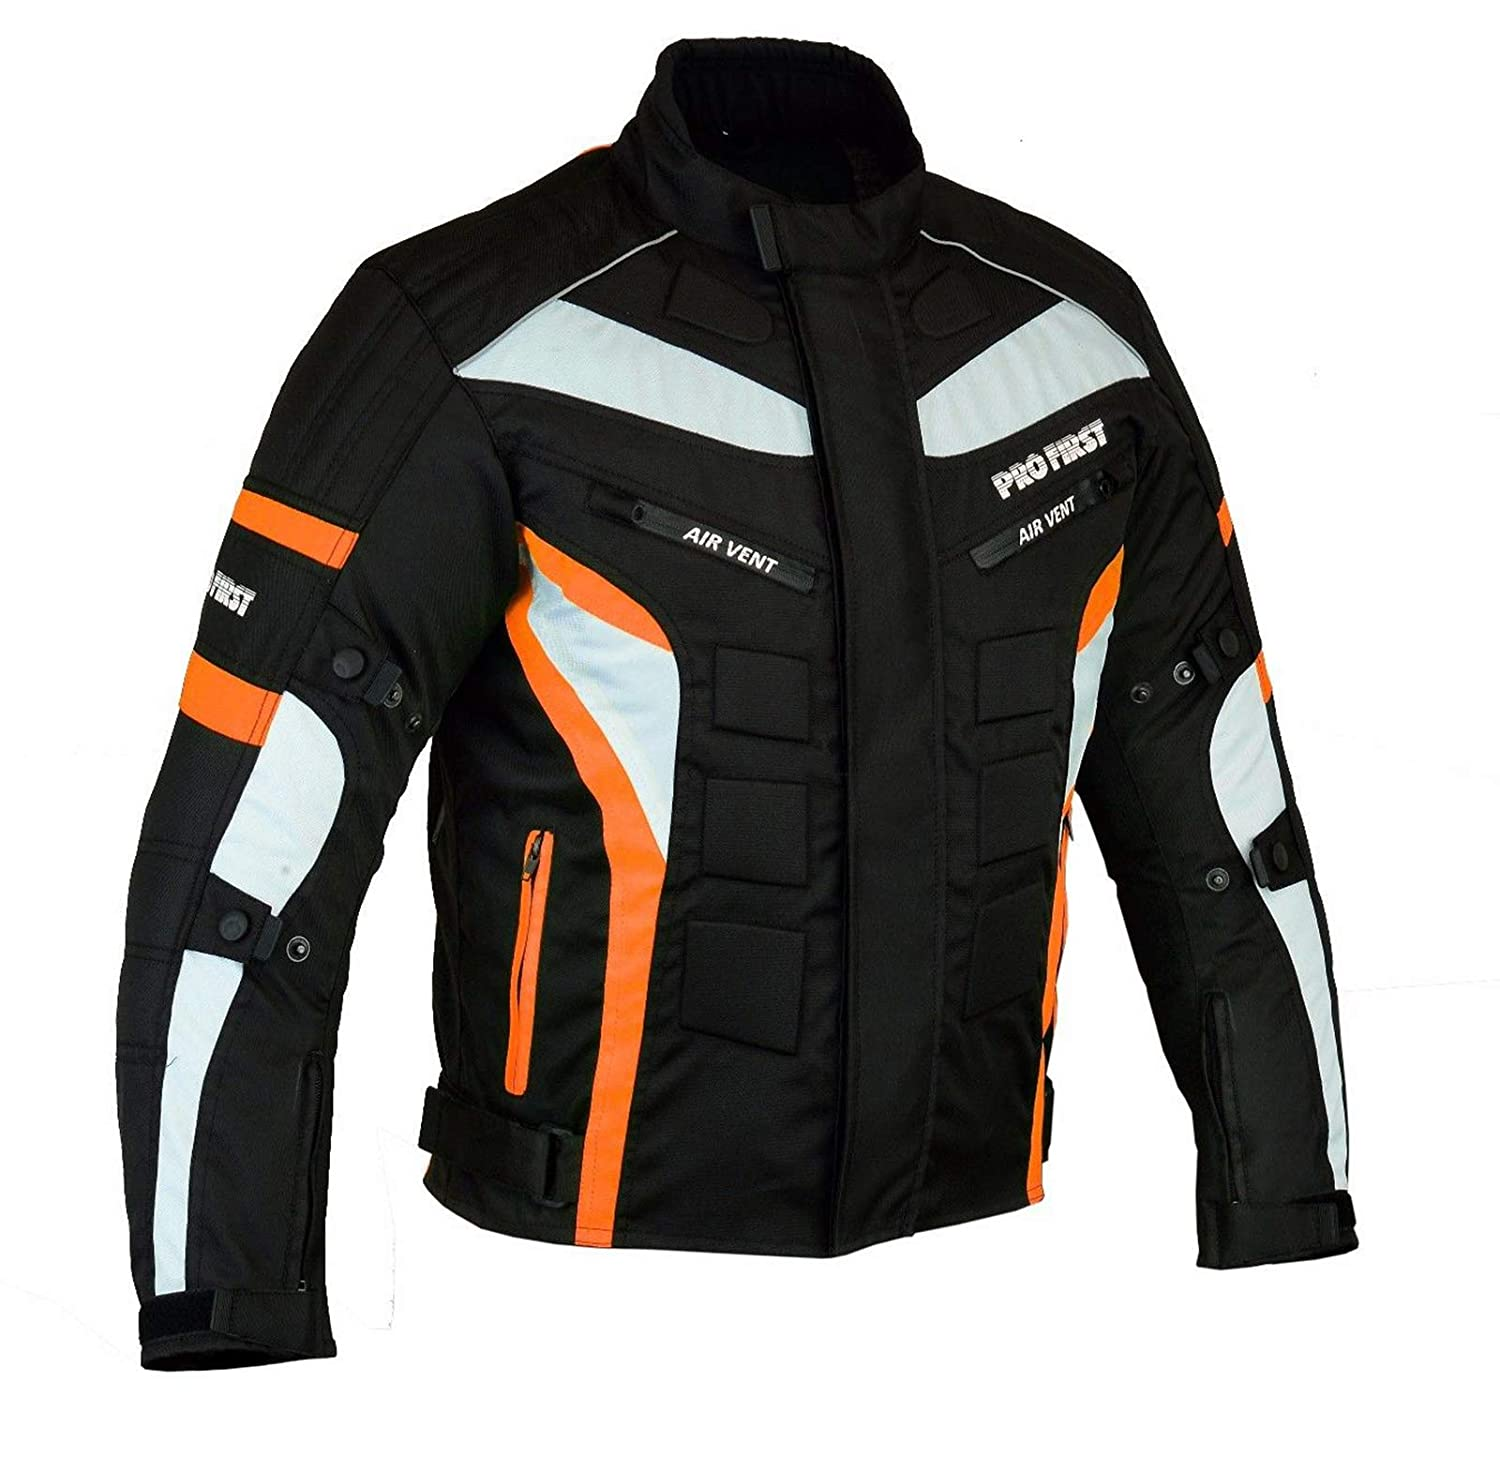 Black /& Orange, X-Large Waterproof Motorbike Motorcycle Jacket in Cordura Fabric and CE Approved Armour 6 Packs Design Most Popular